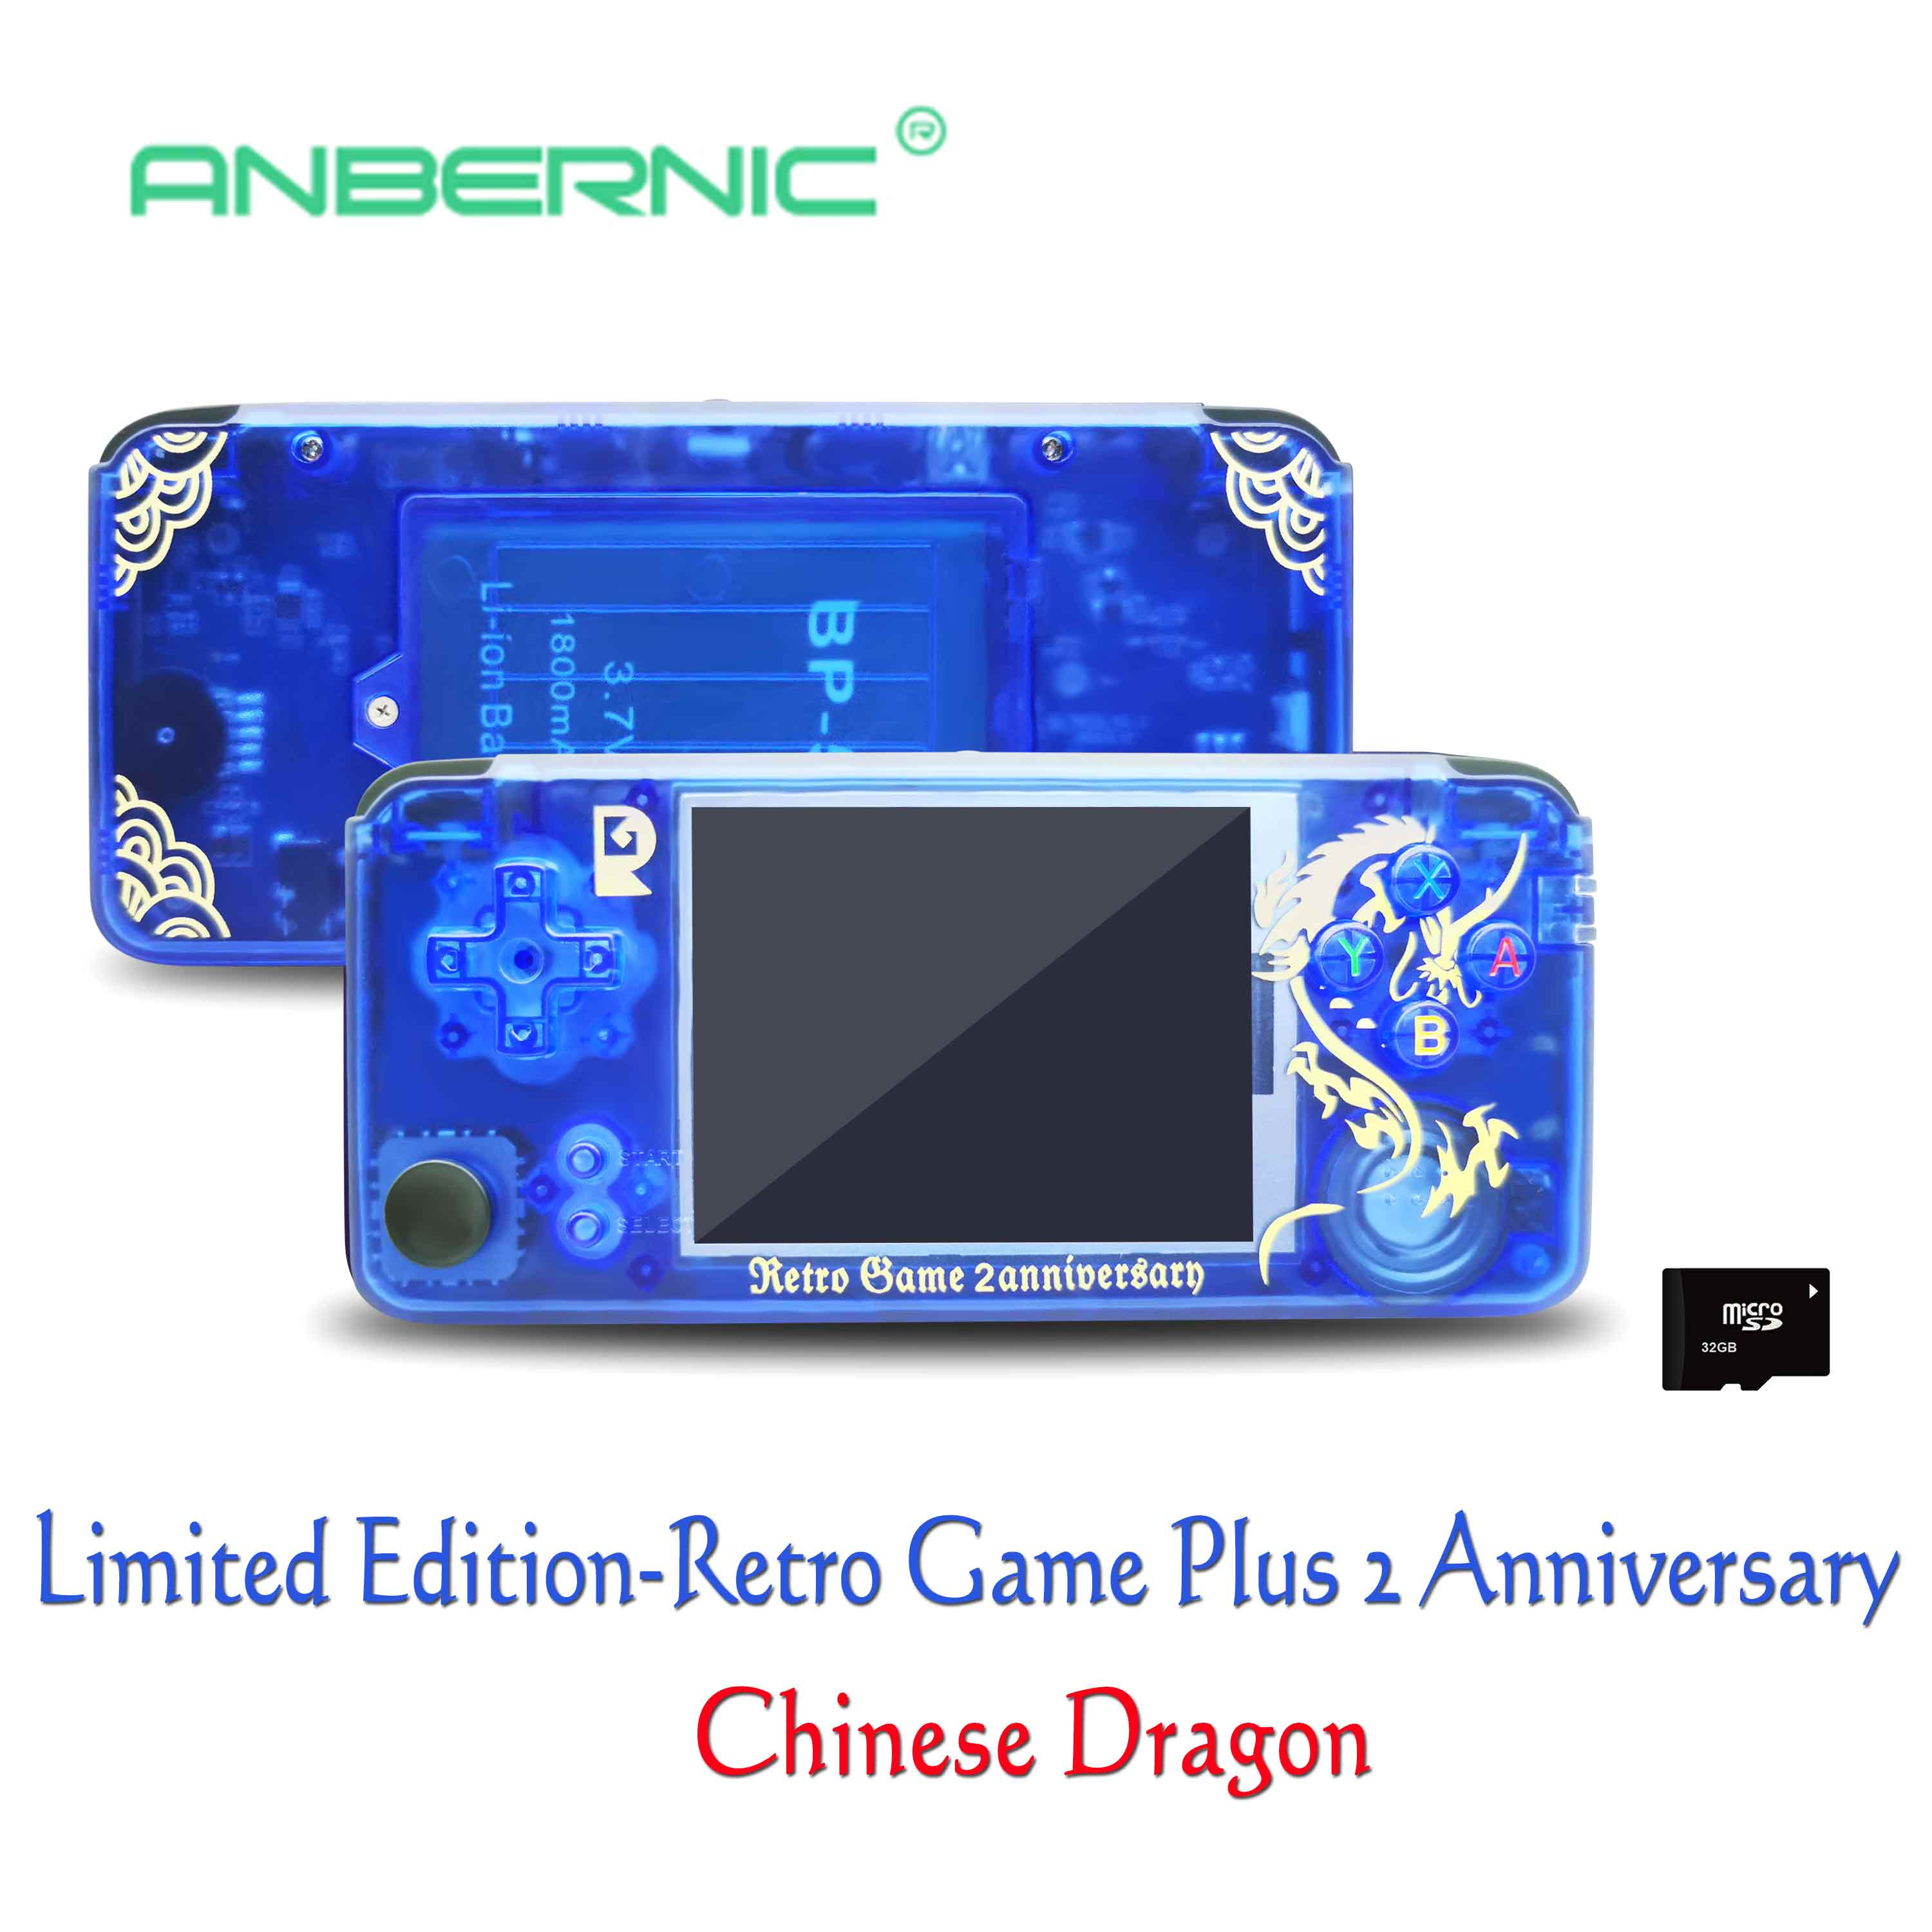 Rs 97 New Limited Edition Retro Game Plus 2 Anniversary Video game 3000 Games Omron Button 32G RG3000 Family Gift consola retro